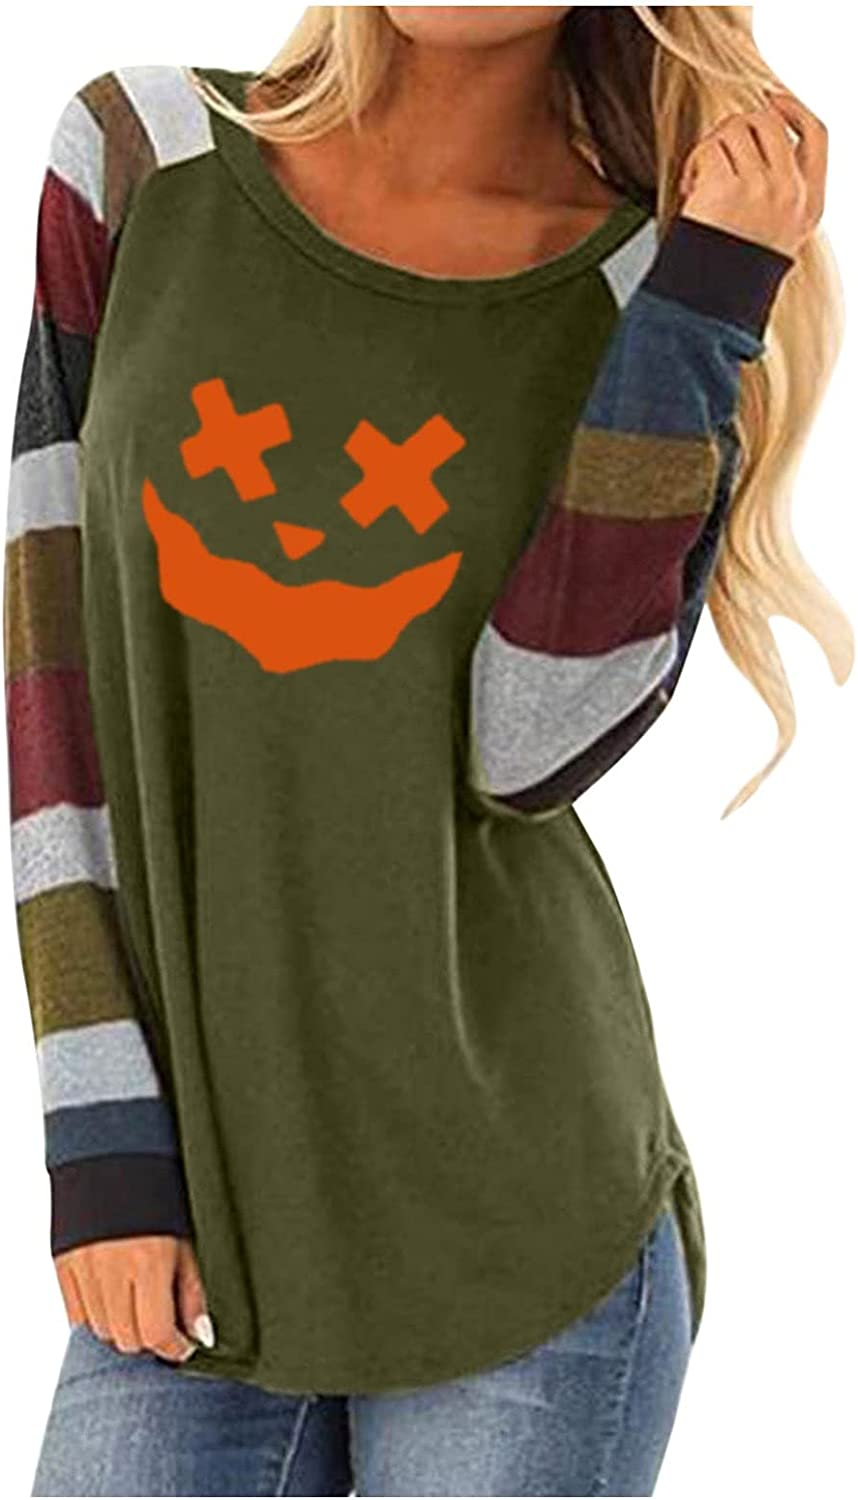 Women's Casual Halloween Print Stitching Stripes Round Neck Long Sleeve Tops